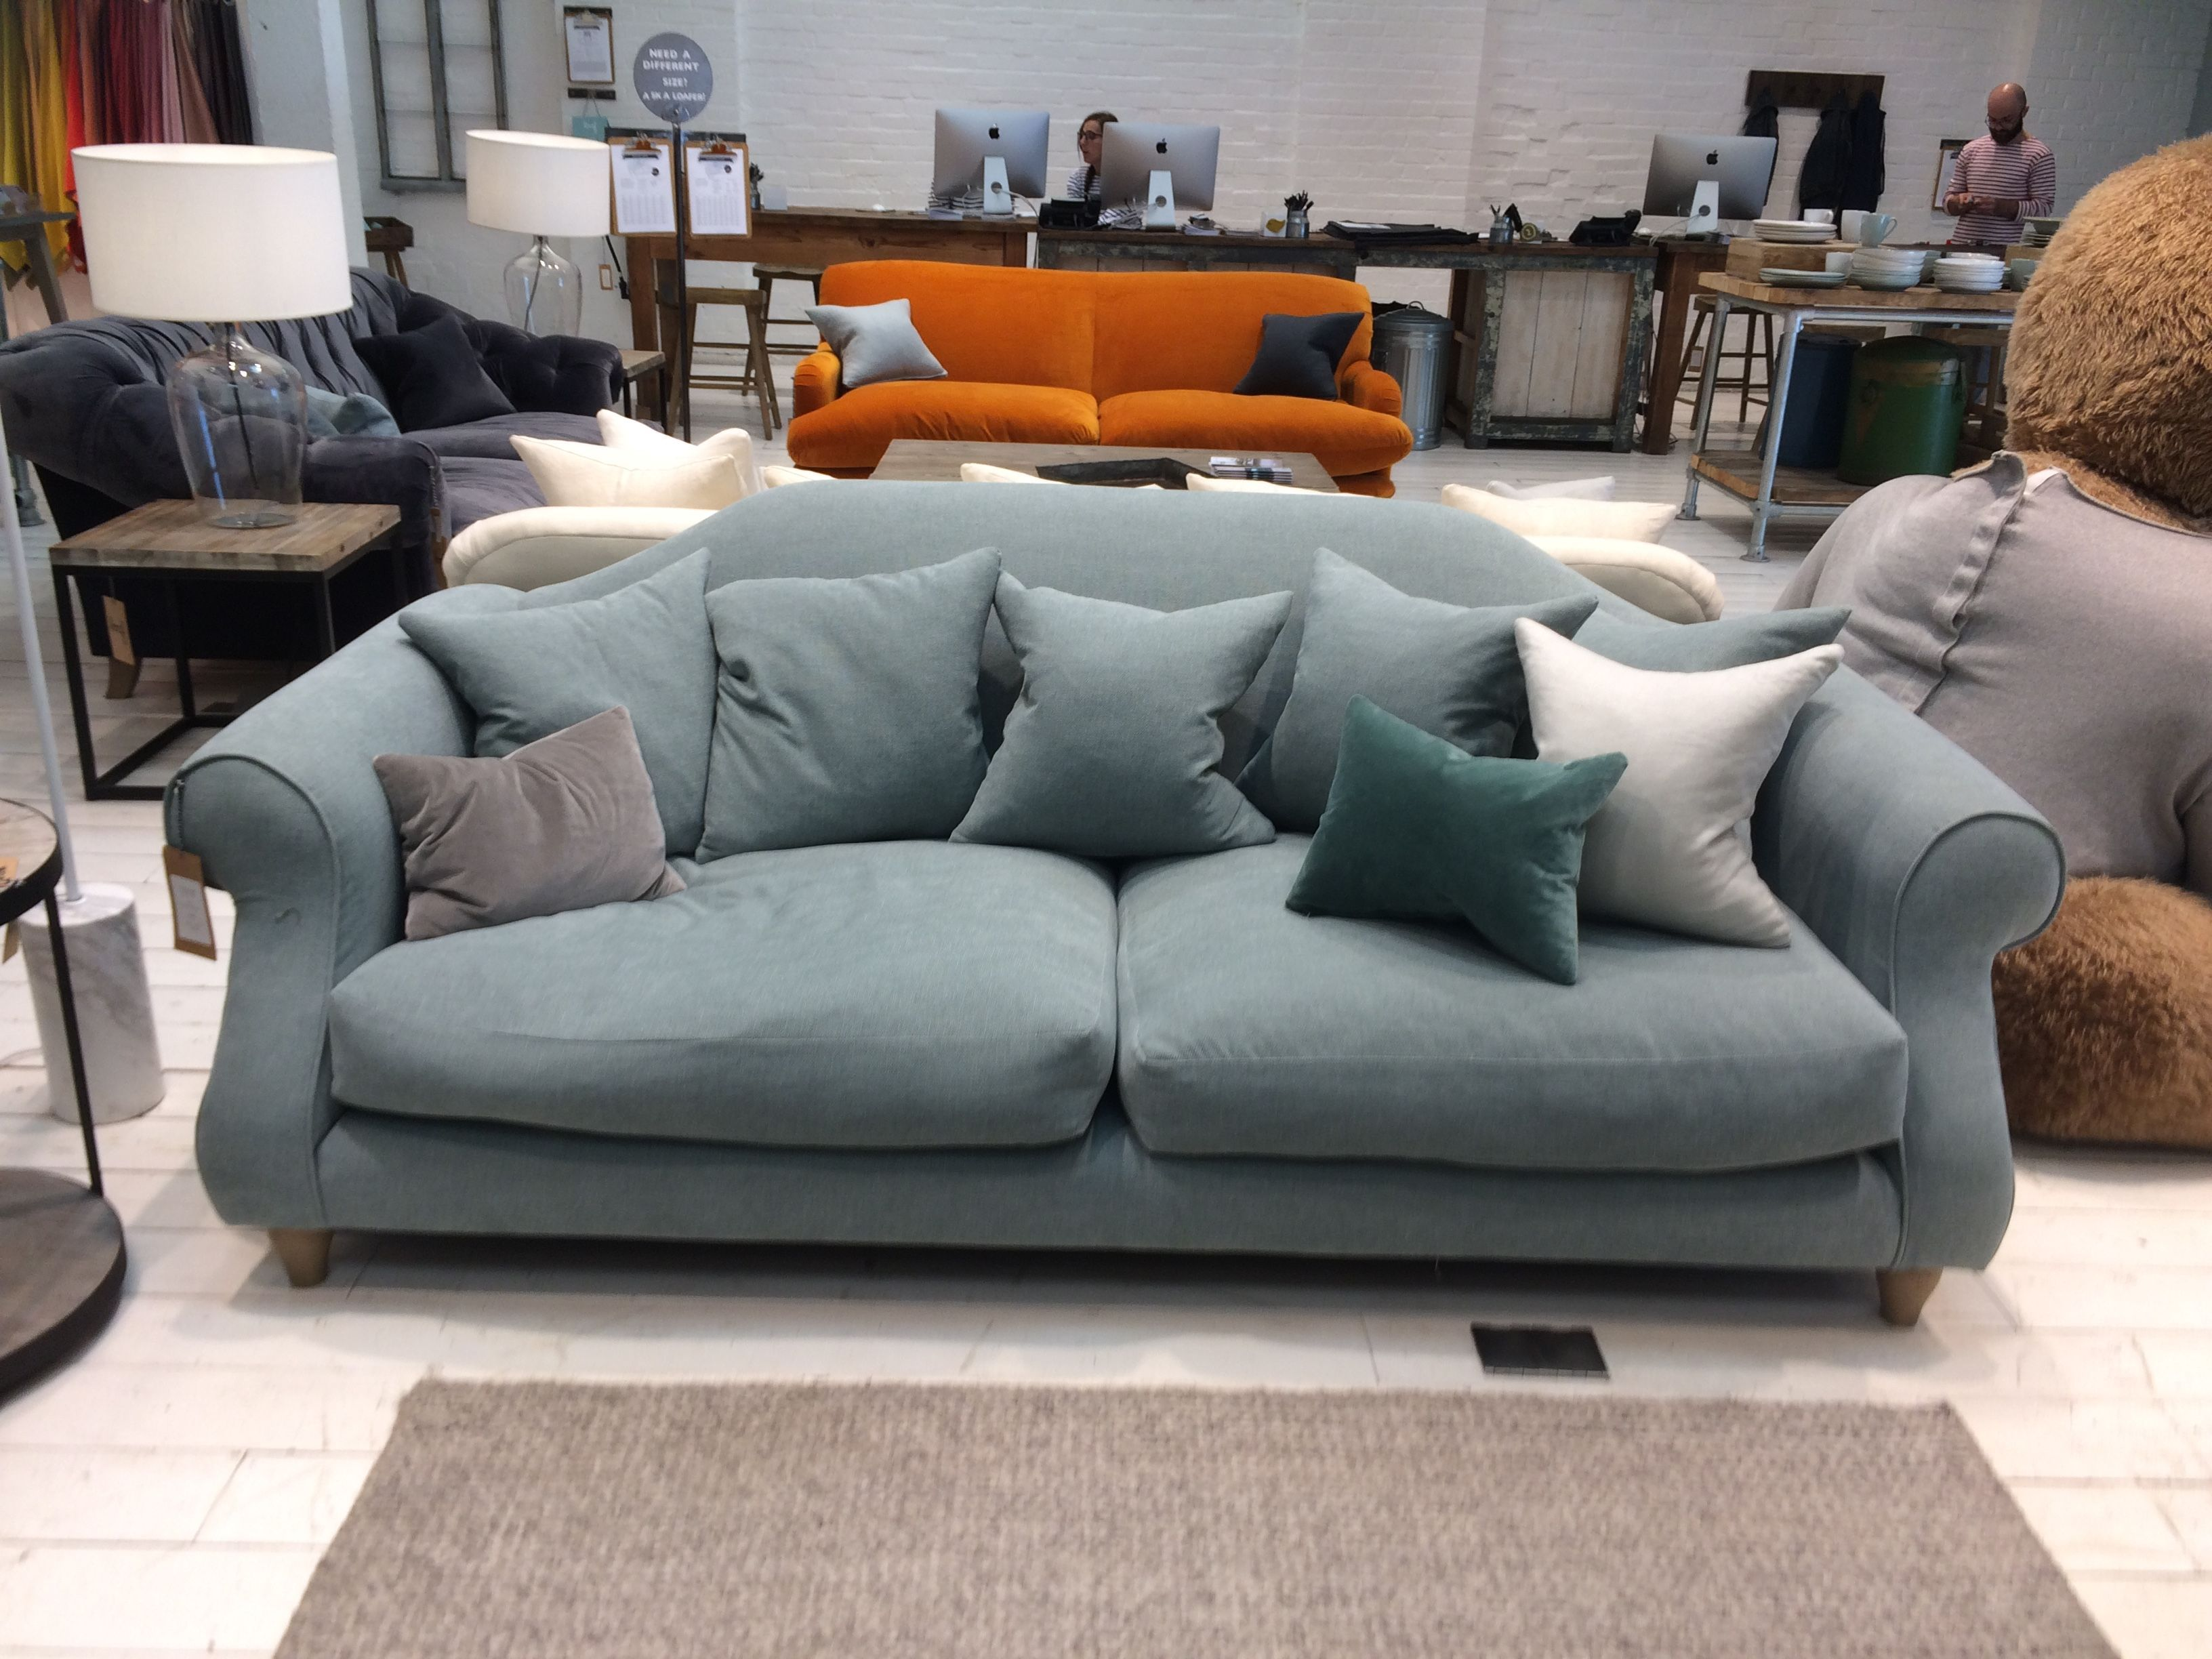 Klassische Sofas You Can Assemble 21 Awesome Jonathan Lewis Sofa Sofa Sofa Living Room Und Room